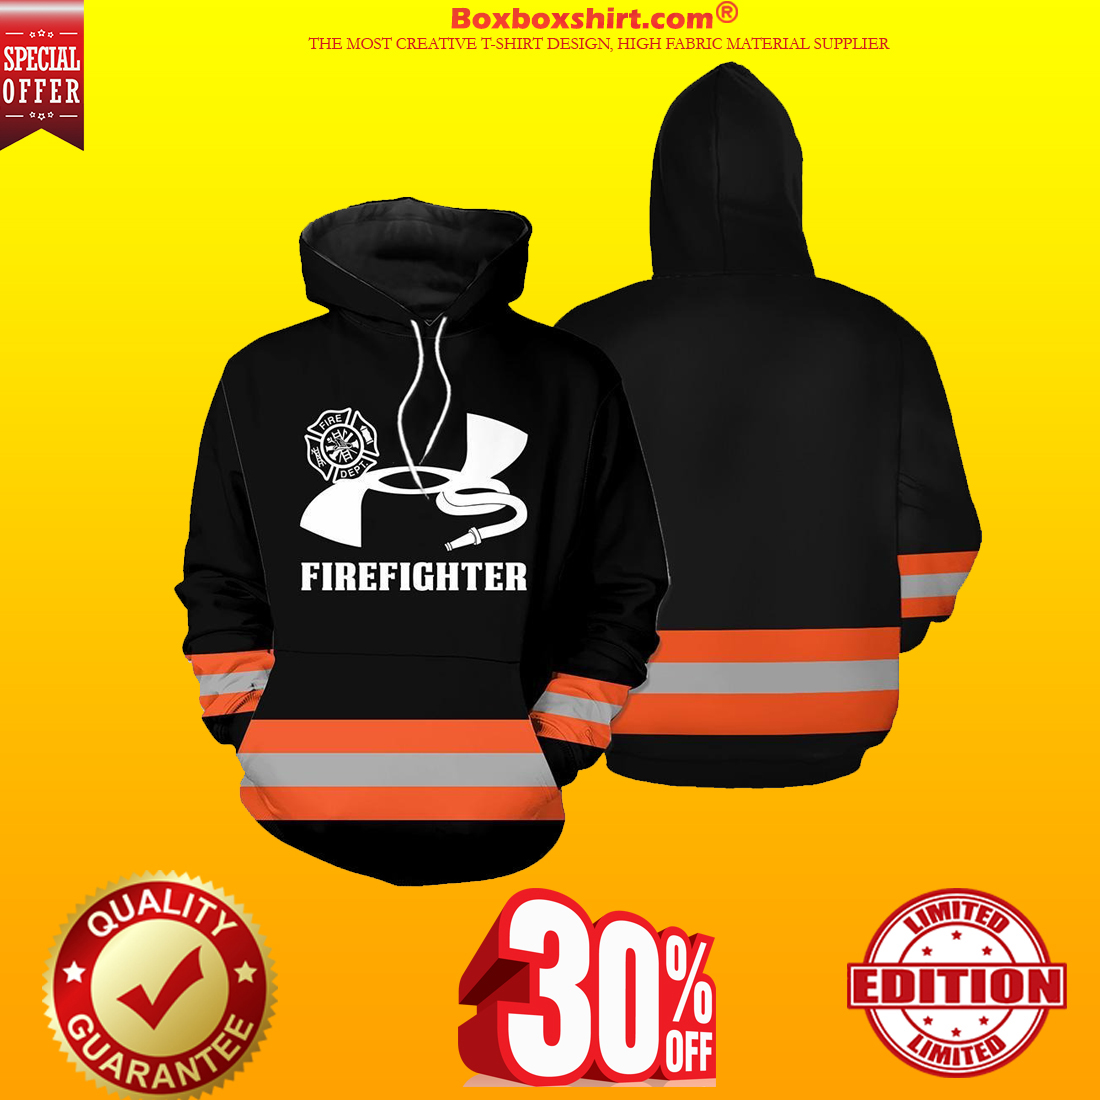 Under Armour firefighter 3d hoodie cool shirt